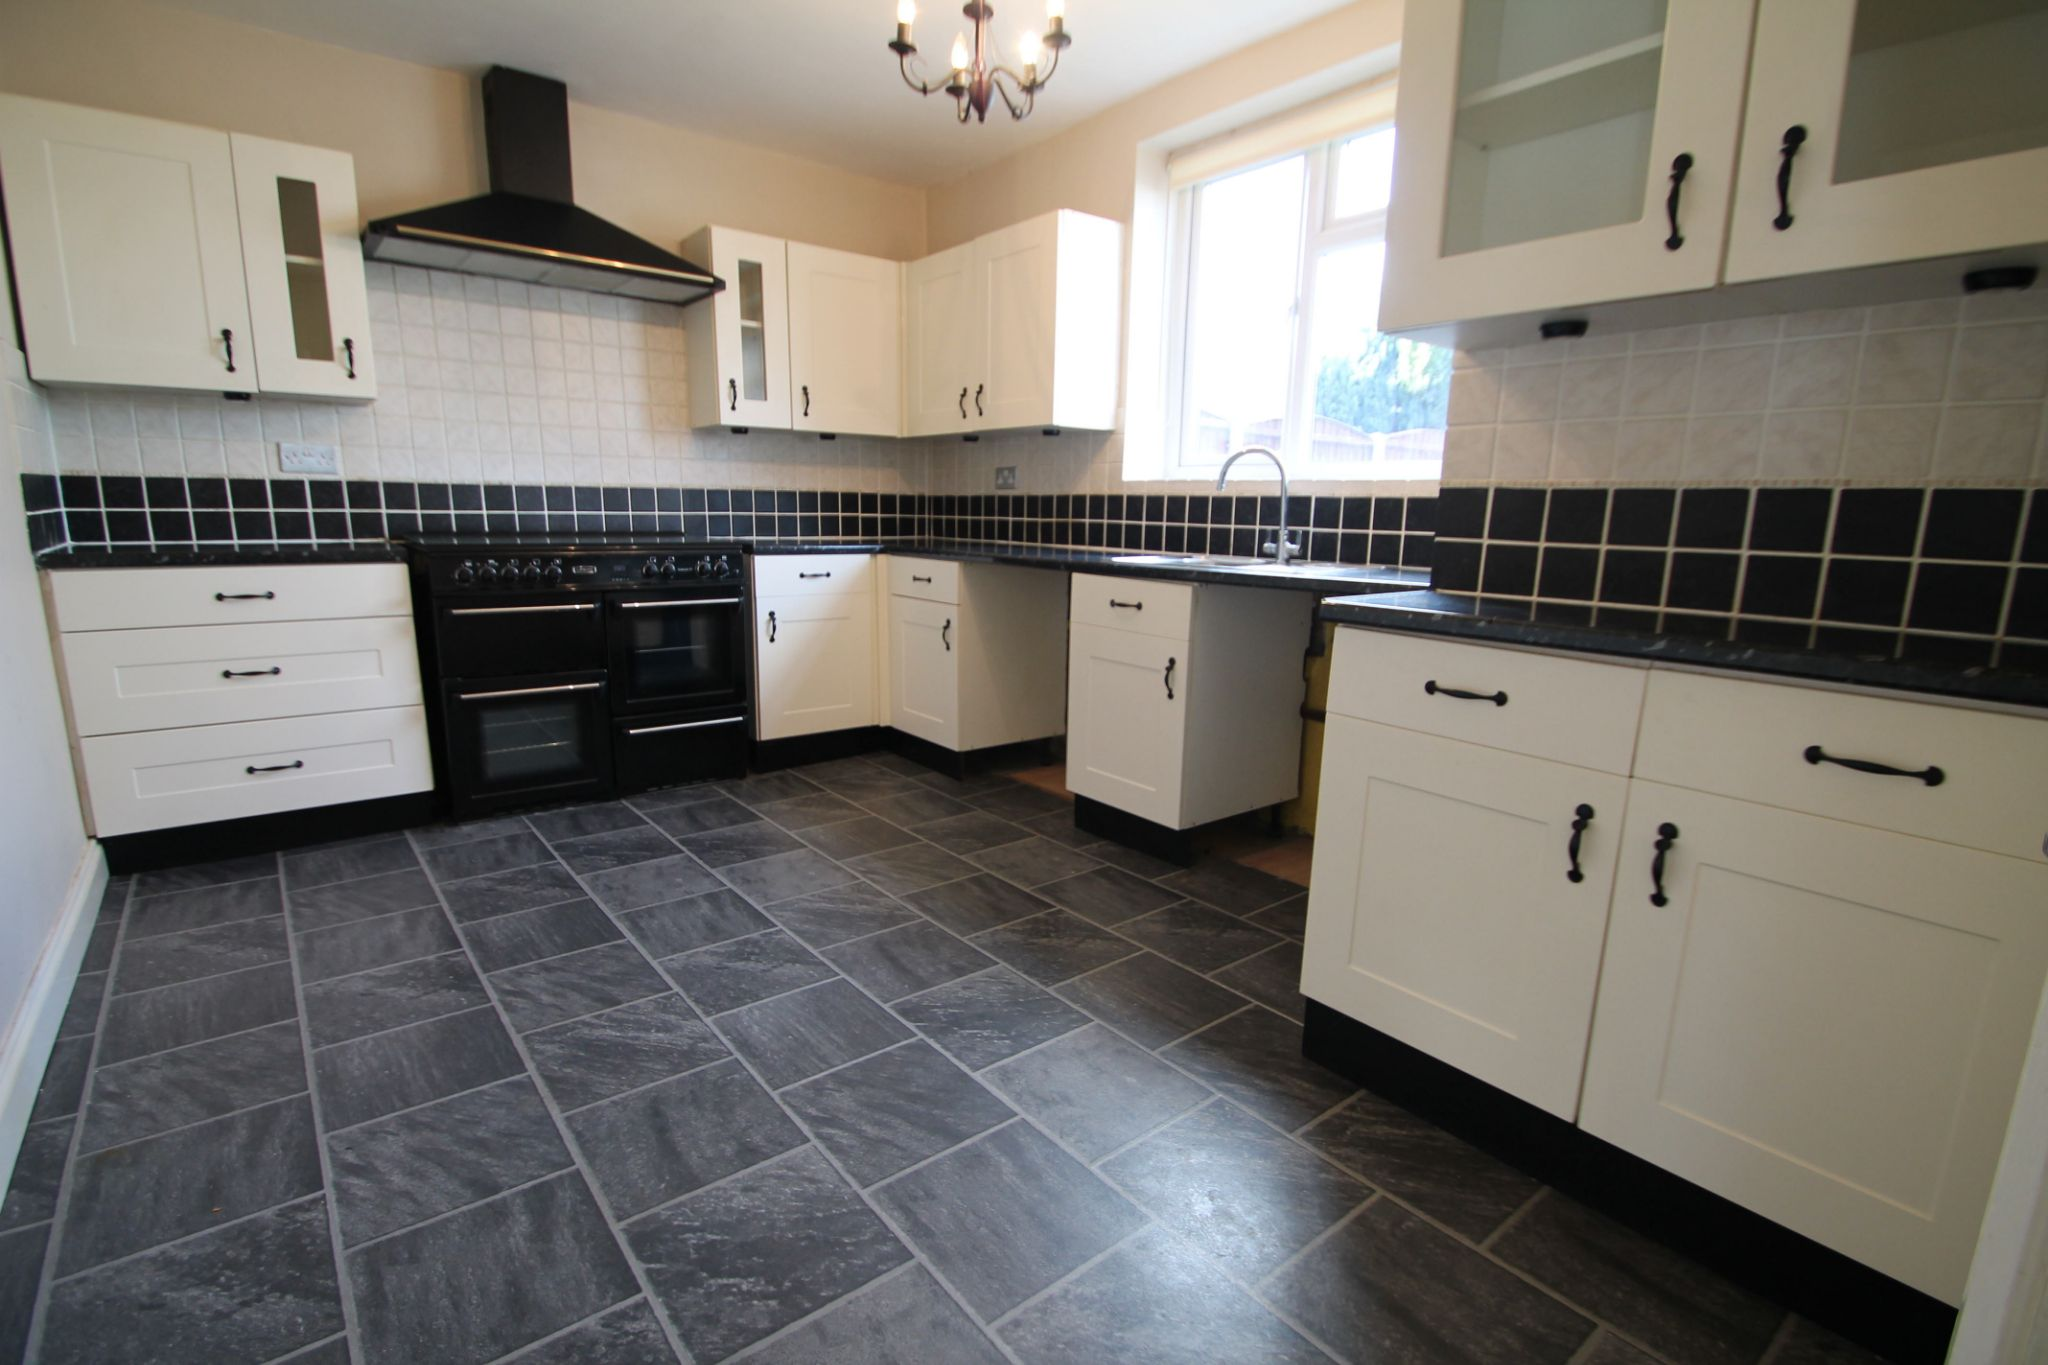 4 Bedroom Mid Terraced House For Sale - Kitchen